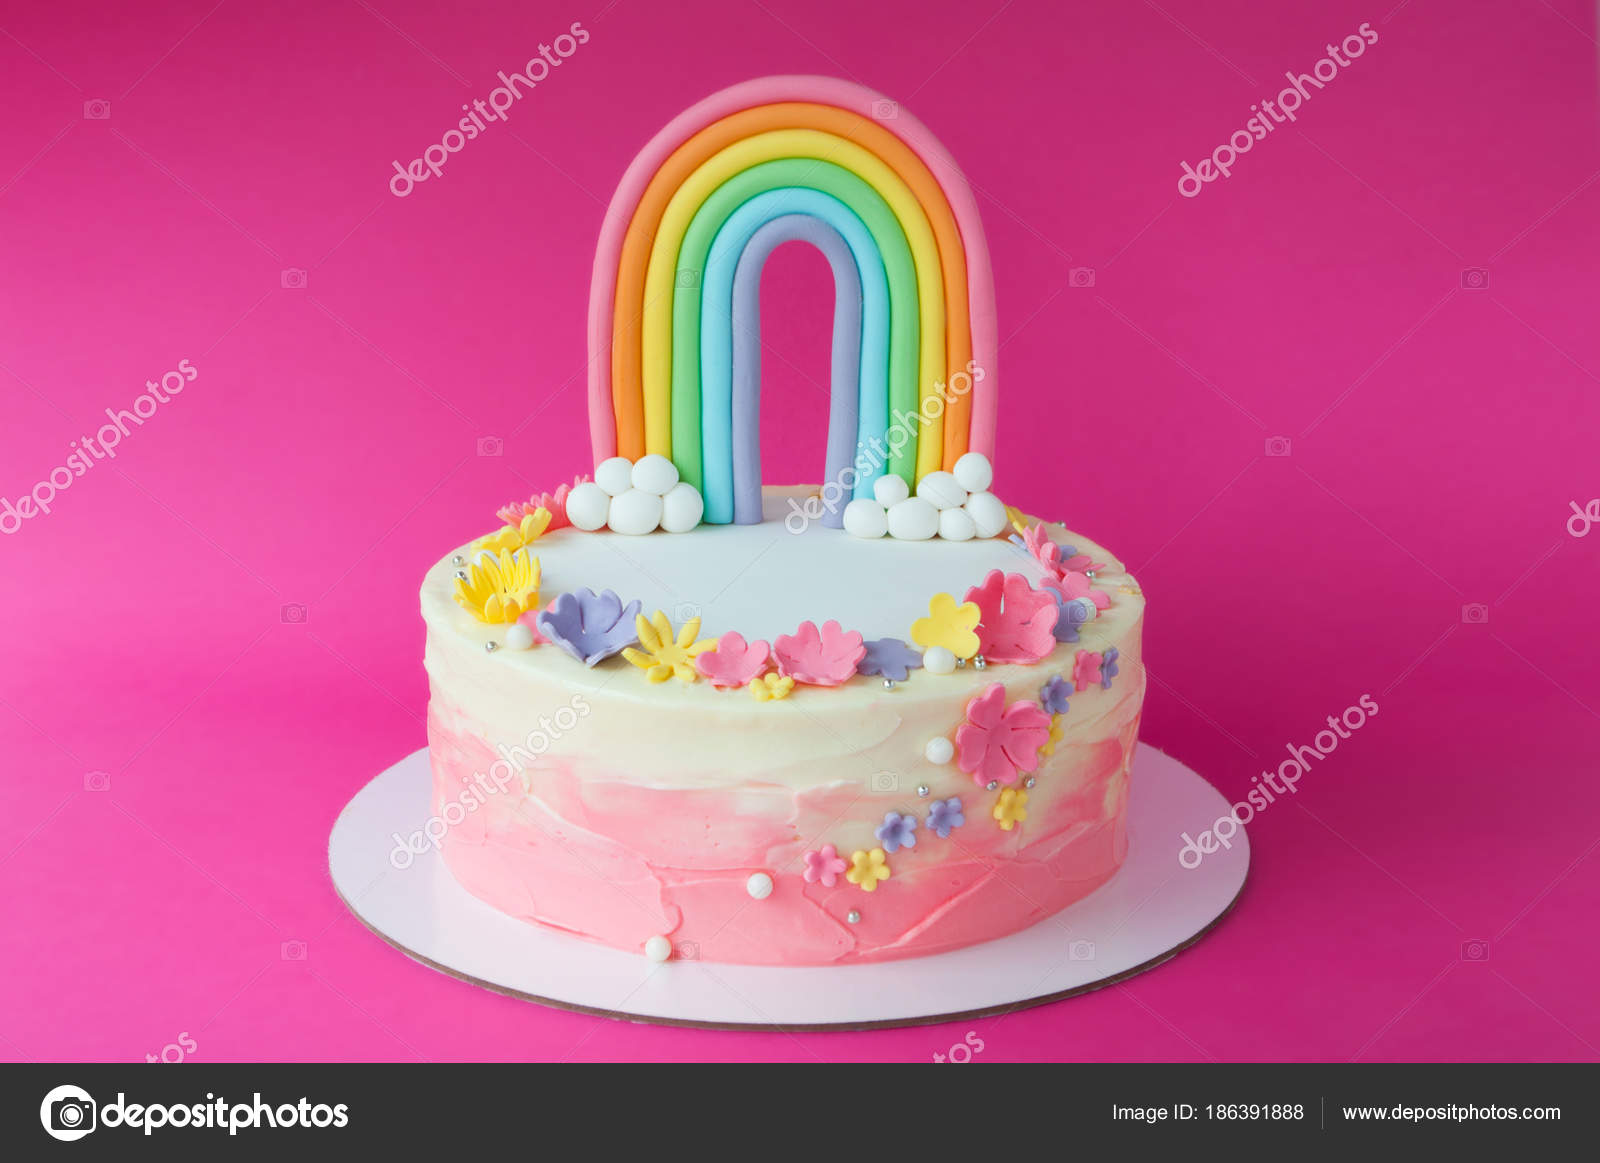 Birthday Pink Cake Girl Decorated Rainbow Clouds Flowers Mastic Pink